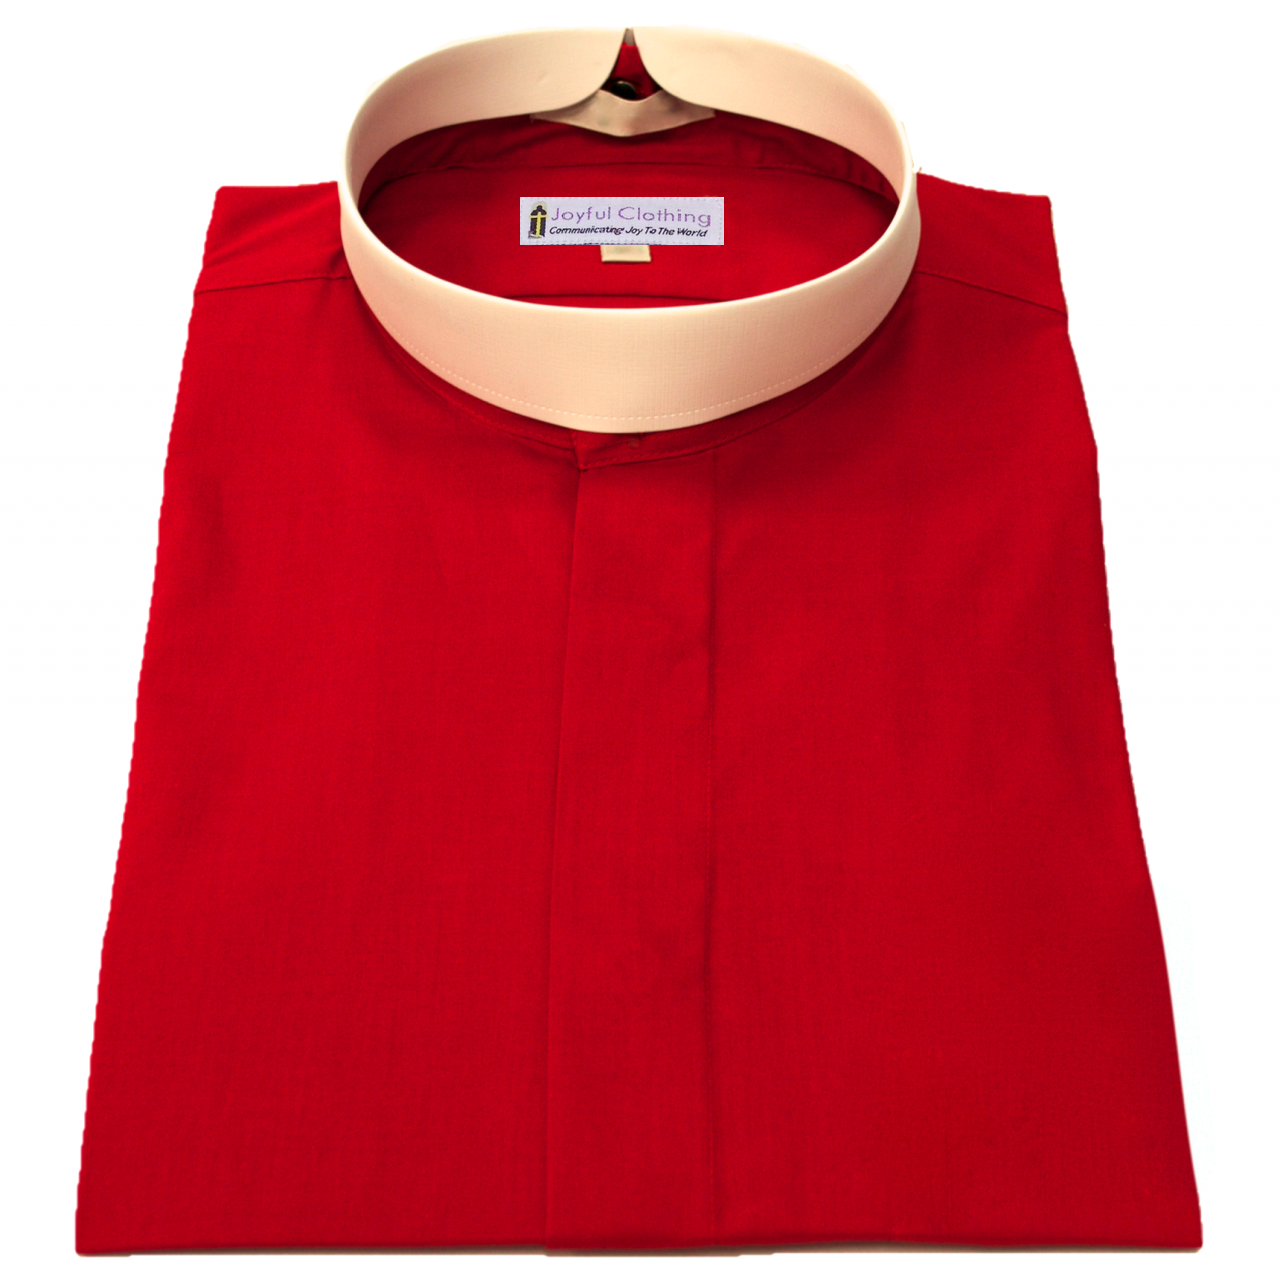 257. Men's Short-Sleeve (Banded) Full-Collar Clergy Shirt - Red